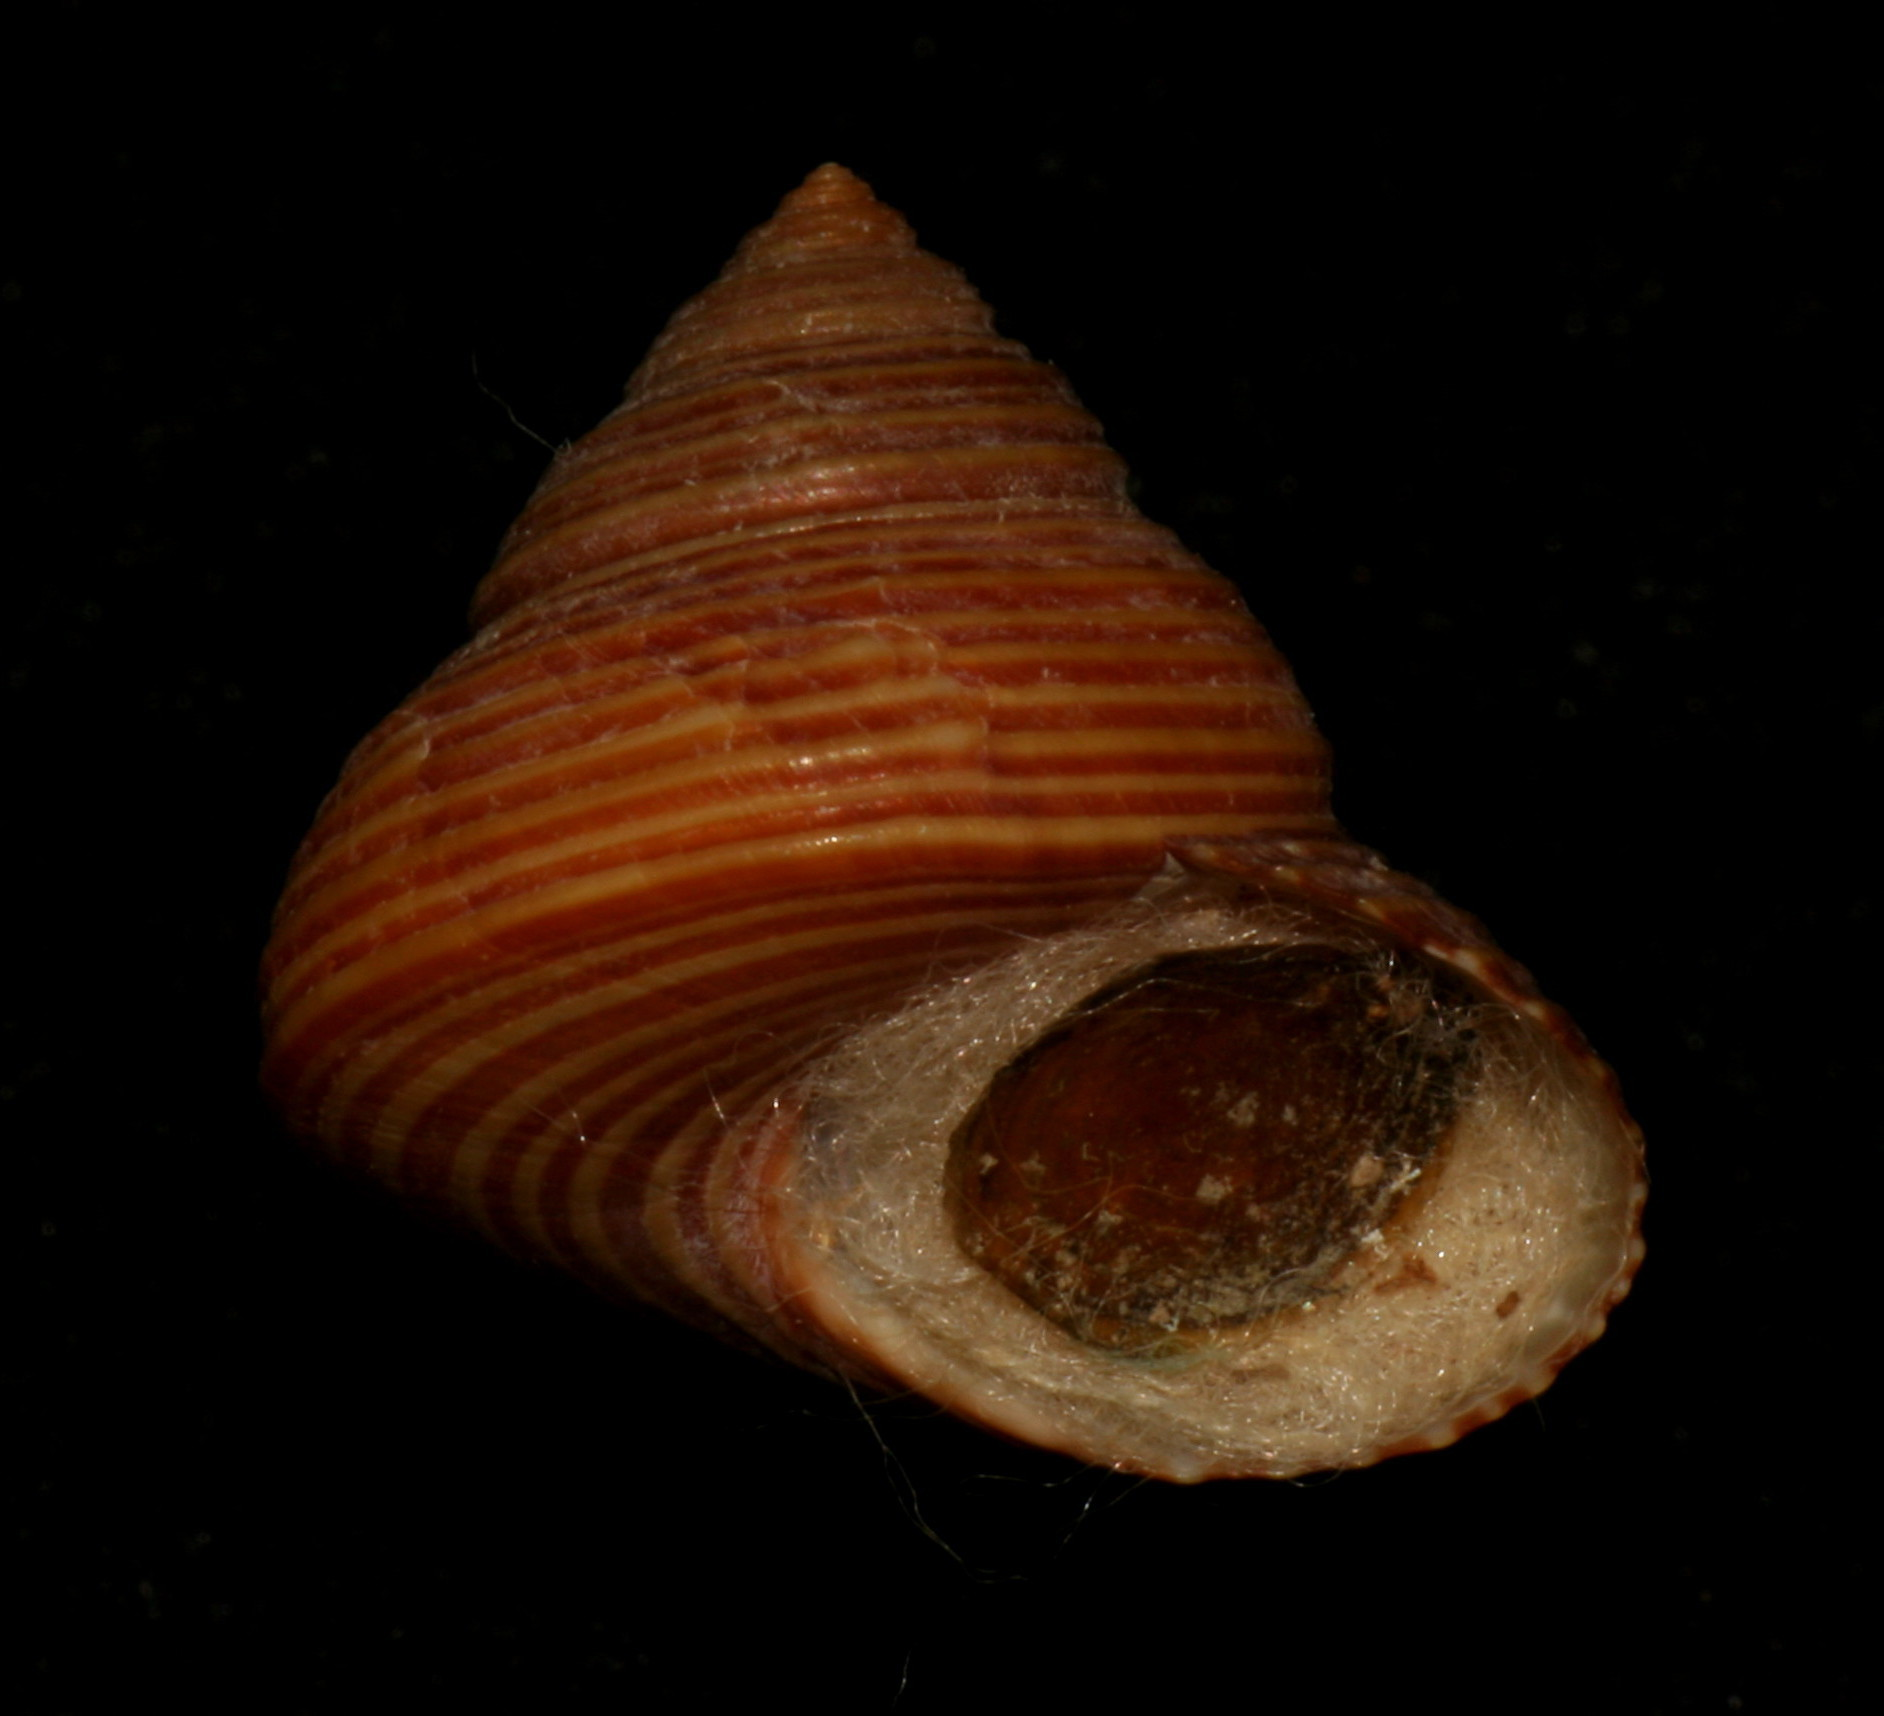 Image of blue topsnail